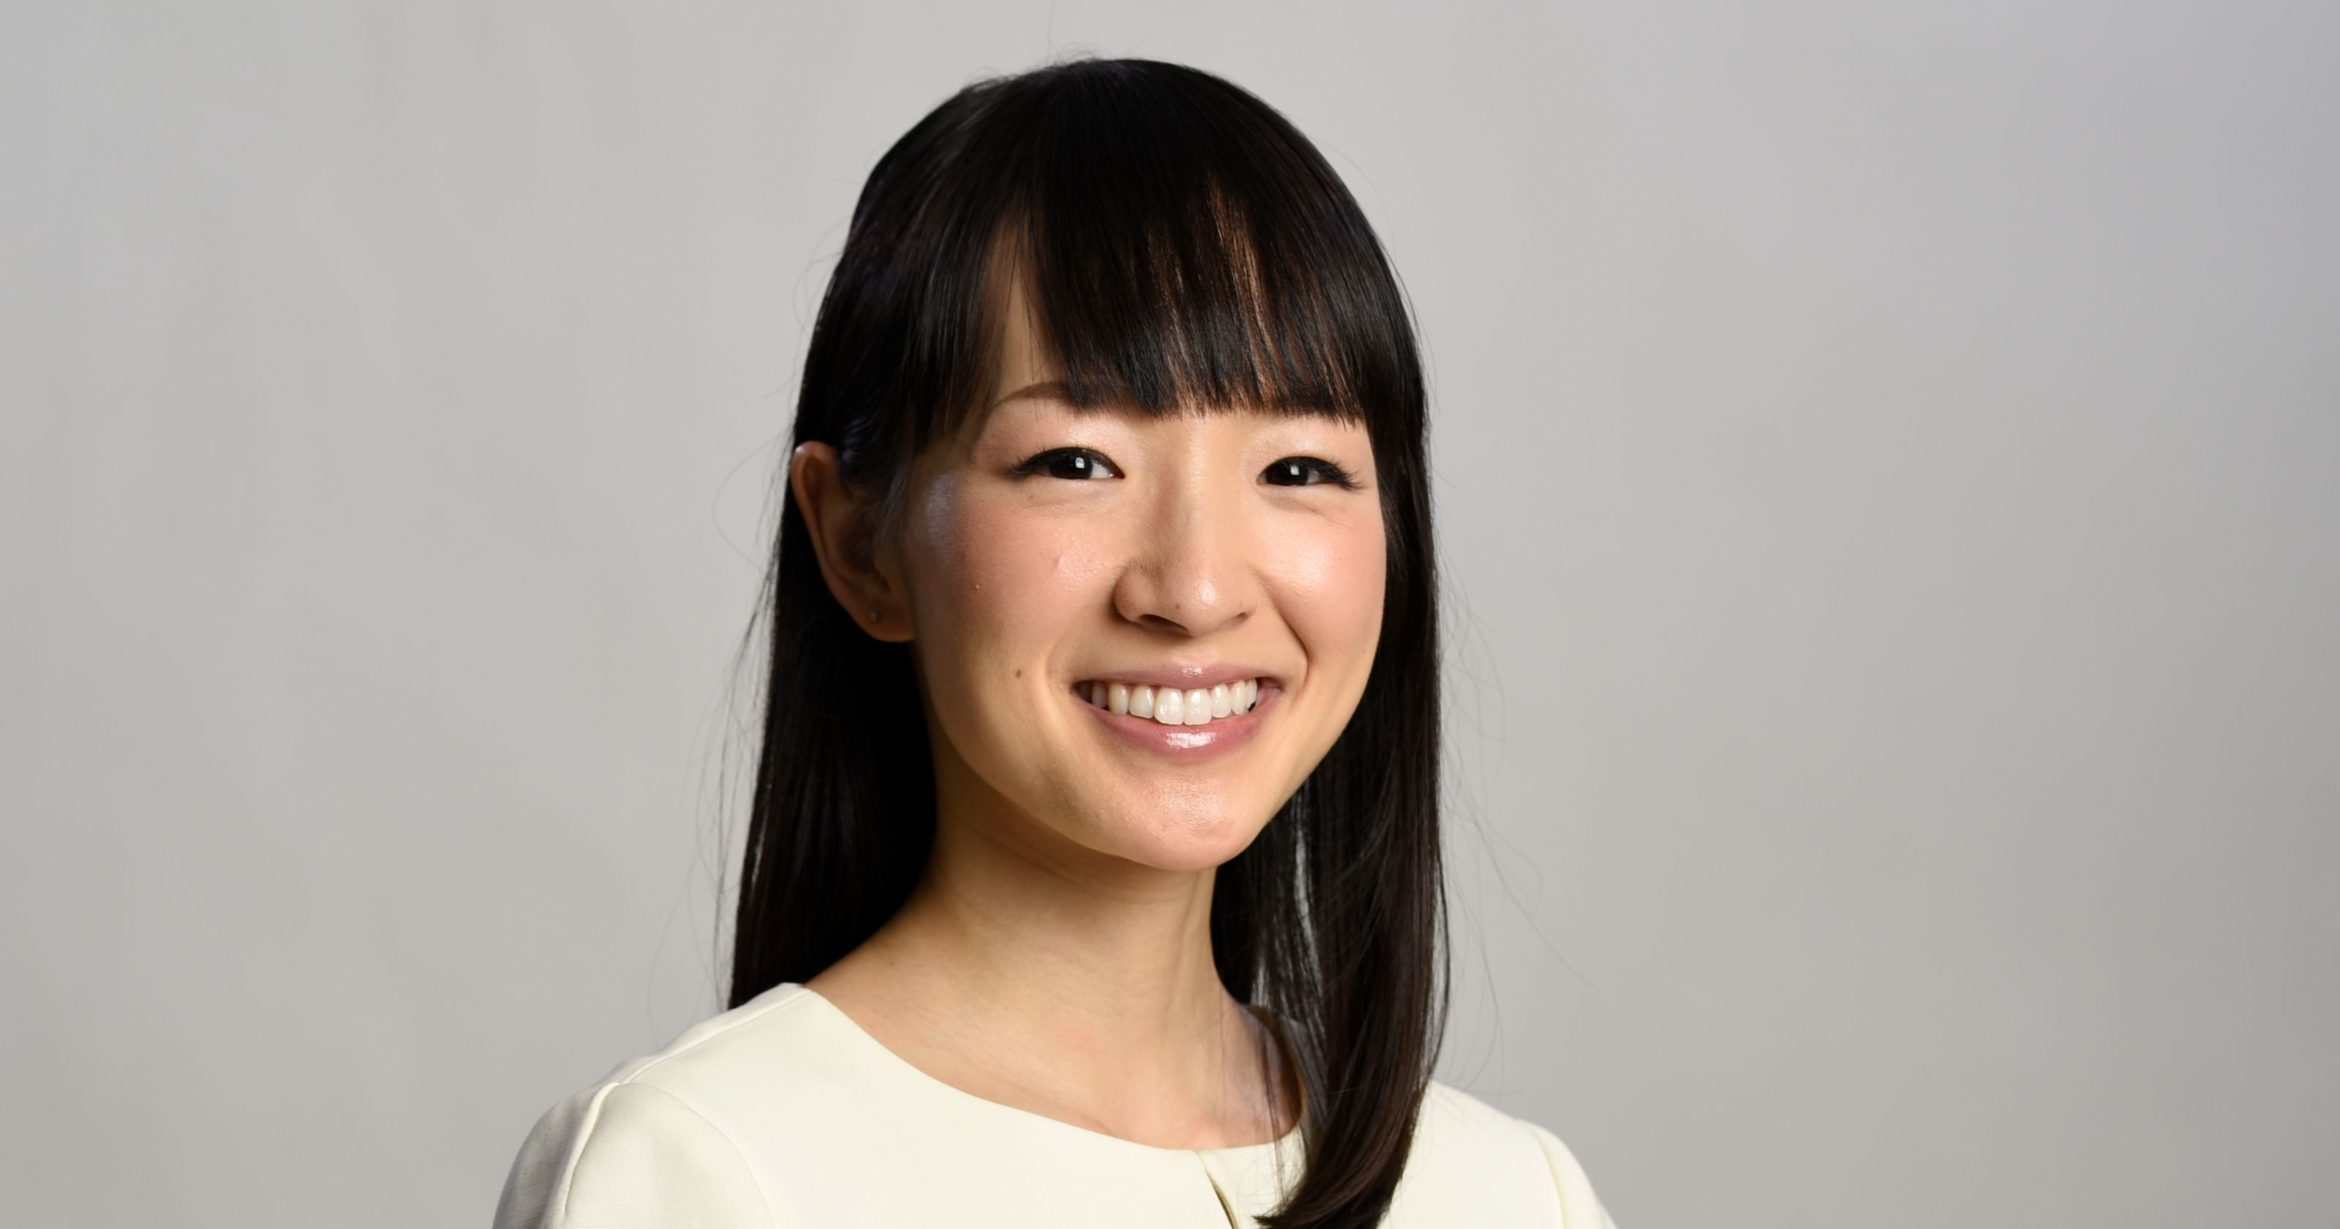 Marie Kondo's Tidying Techniques Will Cleanse Your Home And Your Mind